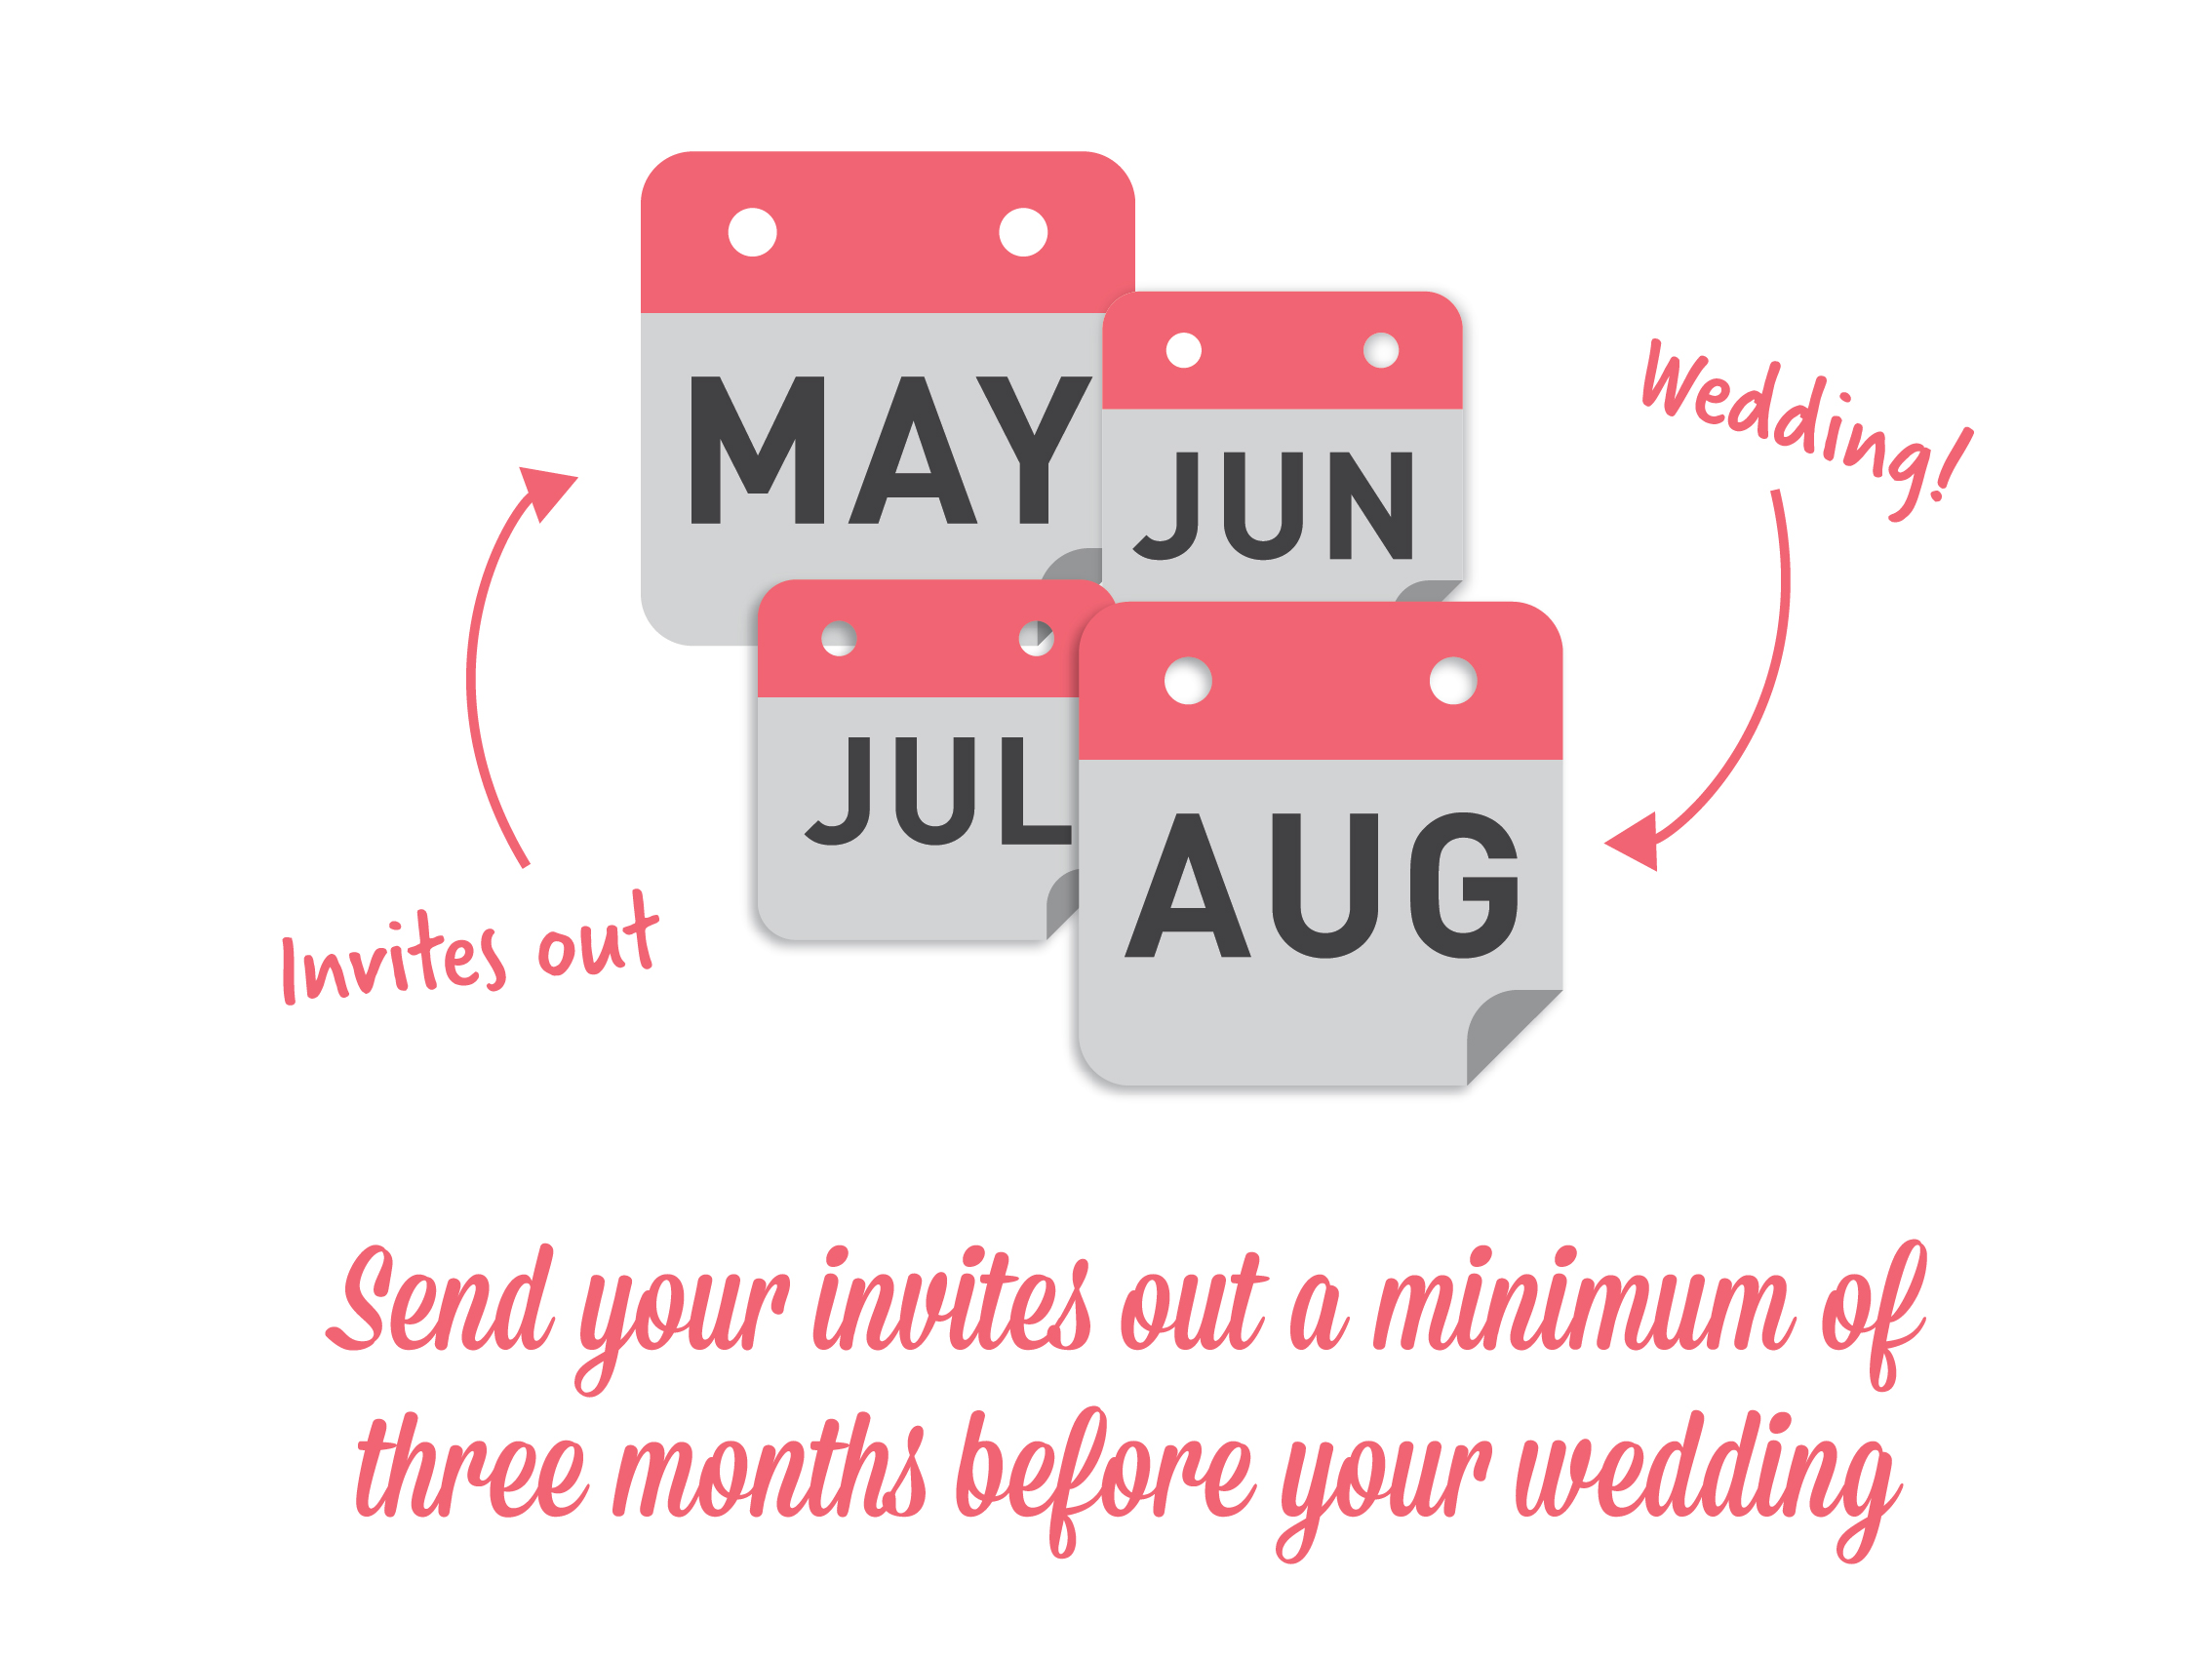 TopTenWeddingInvitationTips